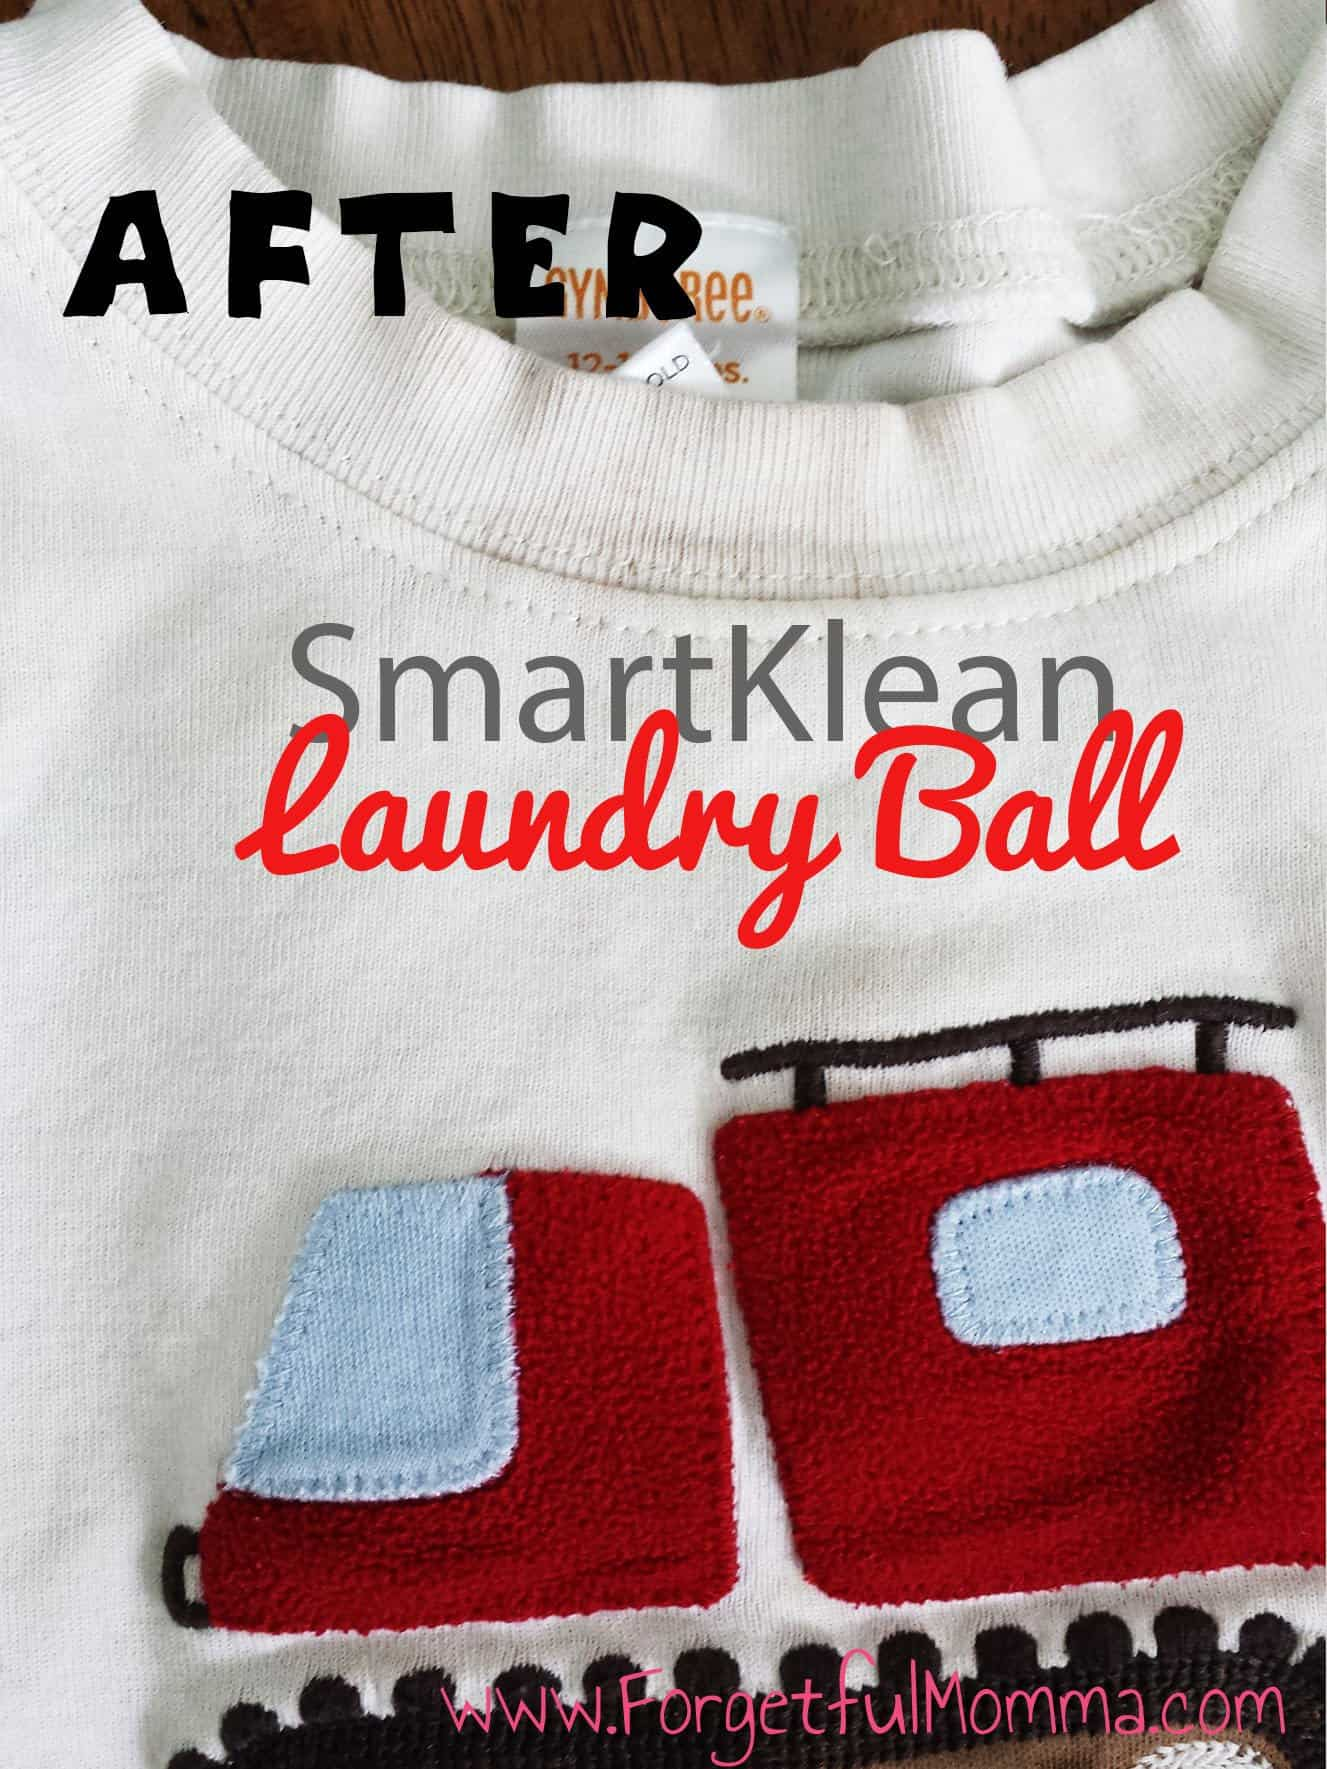 SmartKlean - Laundry Ball - after